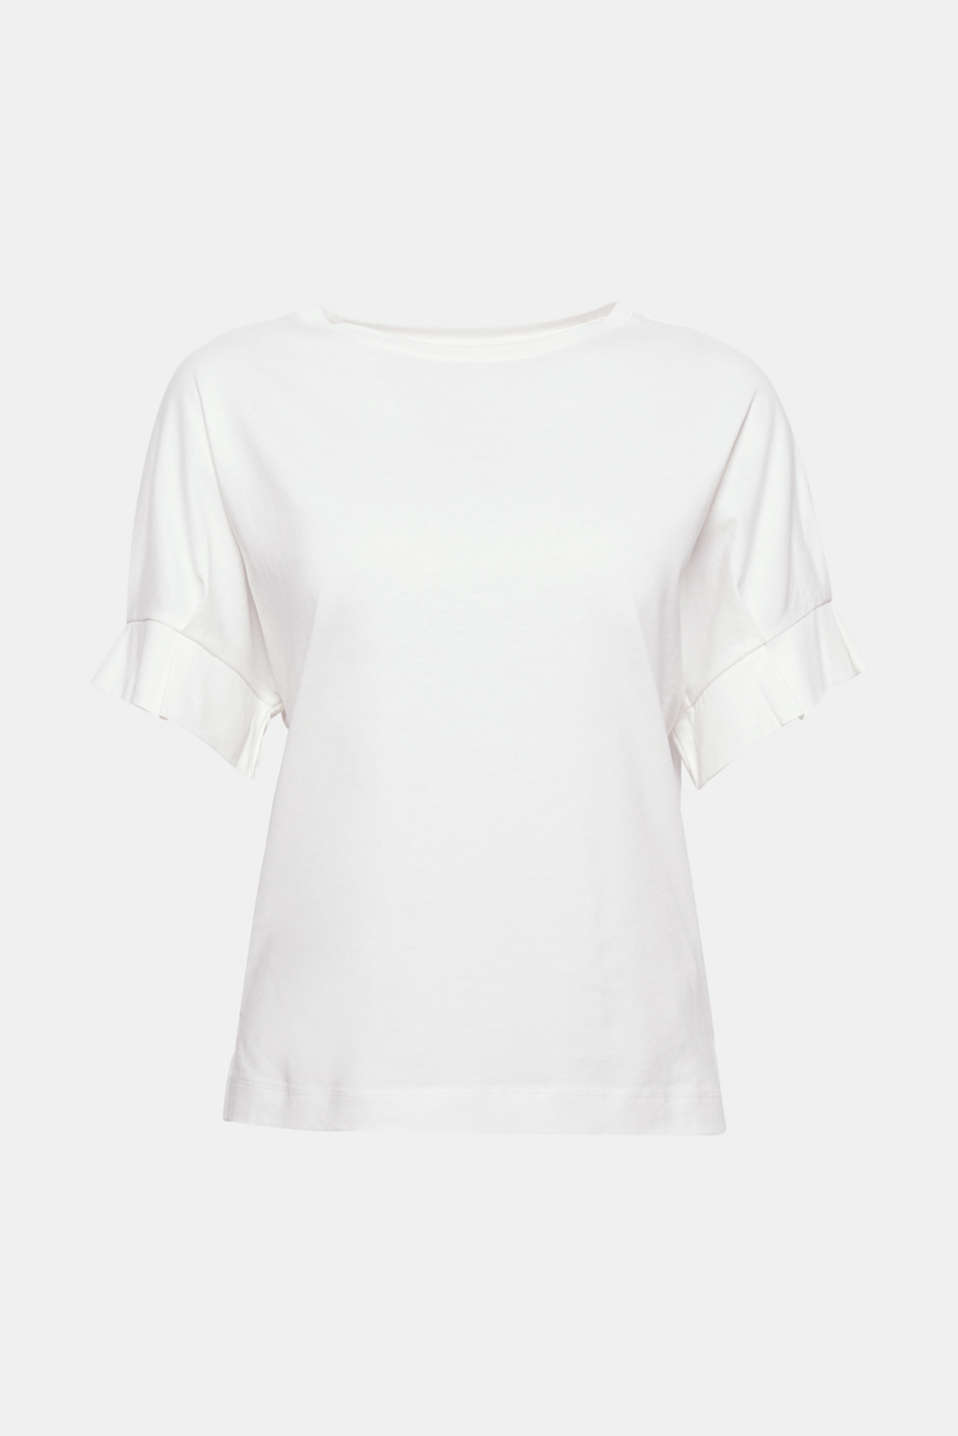 The short, finely pleated raglan sleeves give this relaxed T-shirt an innovative, trendy twist.